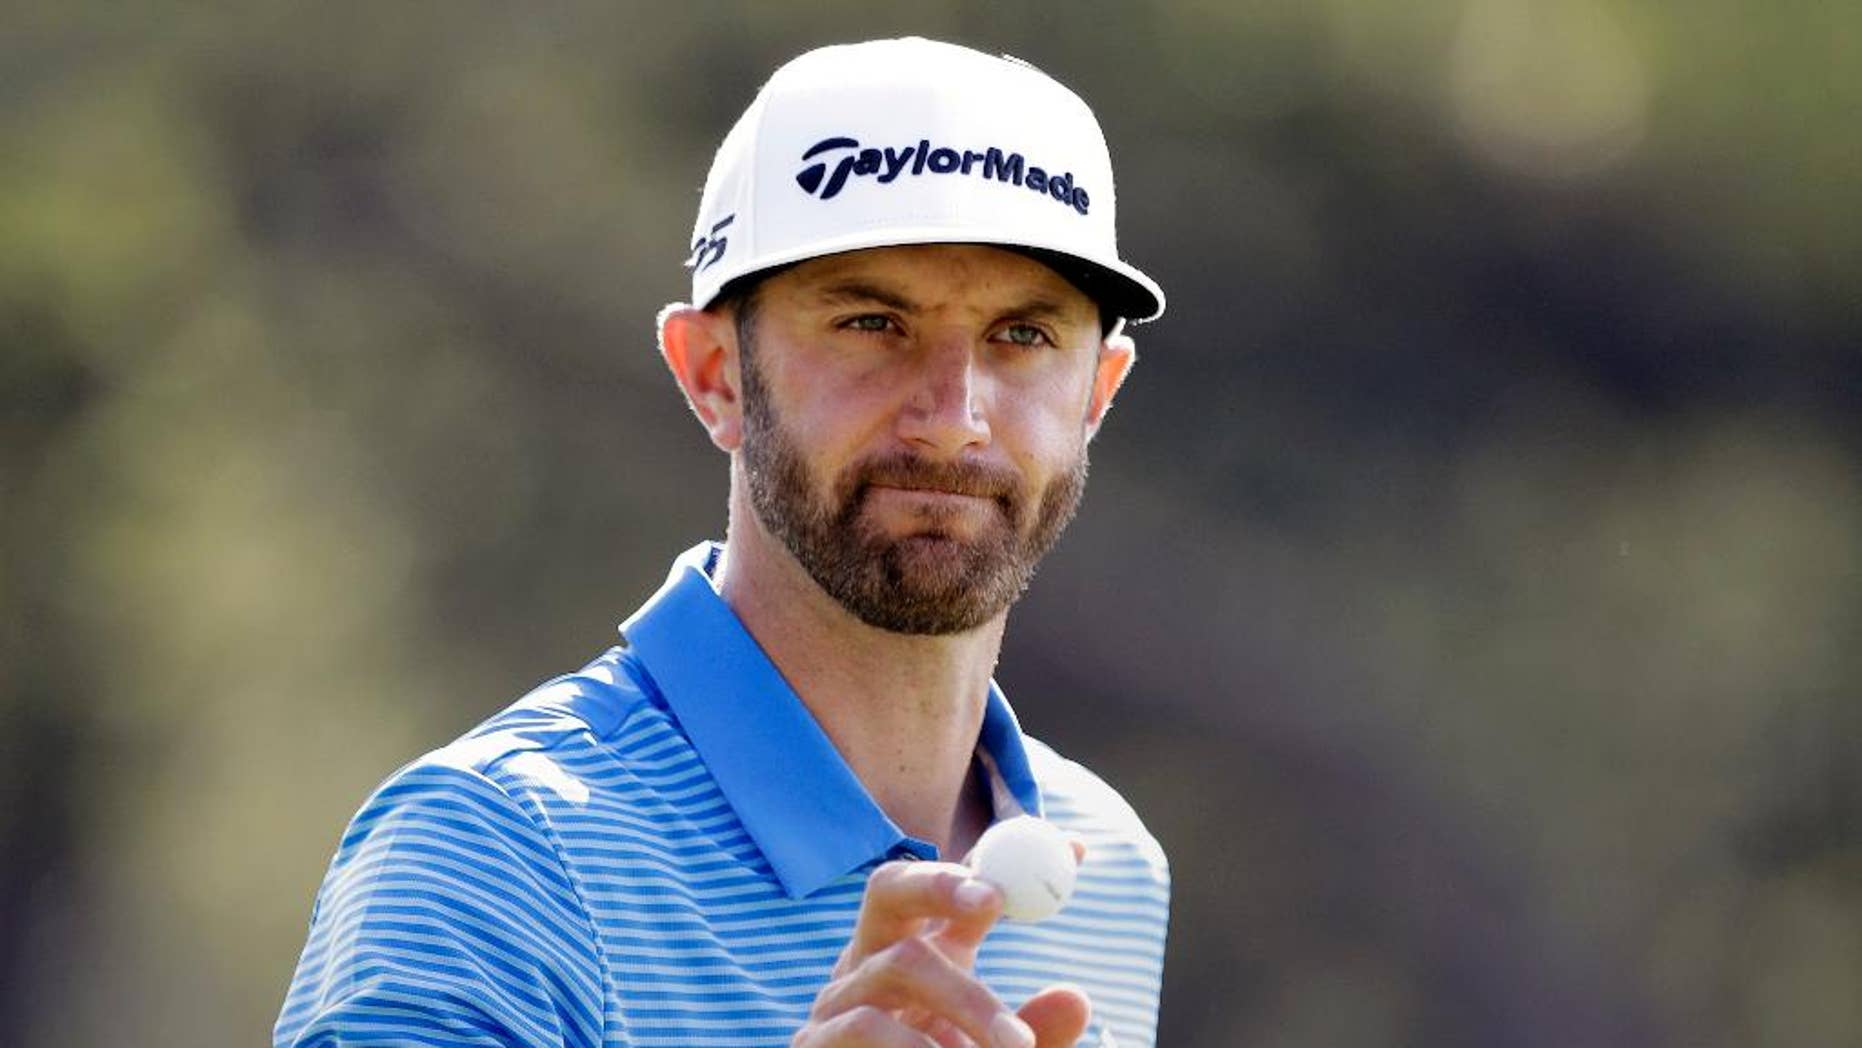 FILE - In this March 26, 2017, file photo, Dustin Johnson waves to the gallery after a birdie putt on the sixth hole during semifinal play at the Dell Technologies Match Play golf tournament at the Austin County Club in Austin, Texas. Johnson's injured back must be feeling better. The world's No. 1 player said he'll return to the PGA Tour at the Wells Fargo Championships at Eagle Point Golf Club from May 4-7. The Wells Fargo Championship announced Johnson's status Thursday, April 13, 2017. (AP Photo/Eric Gay, File)